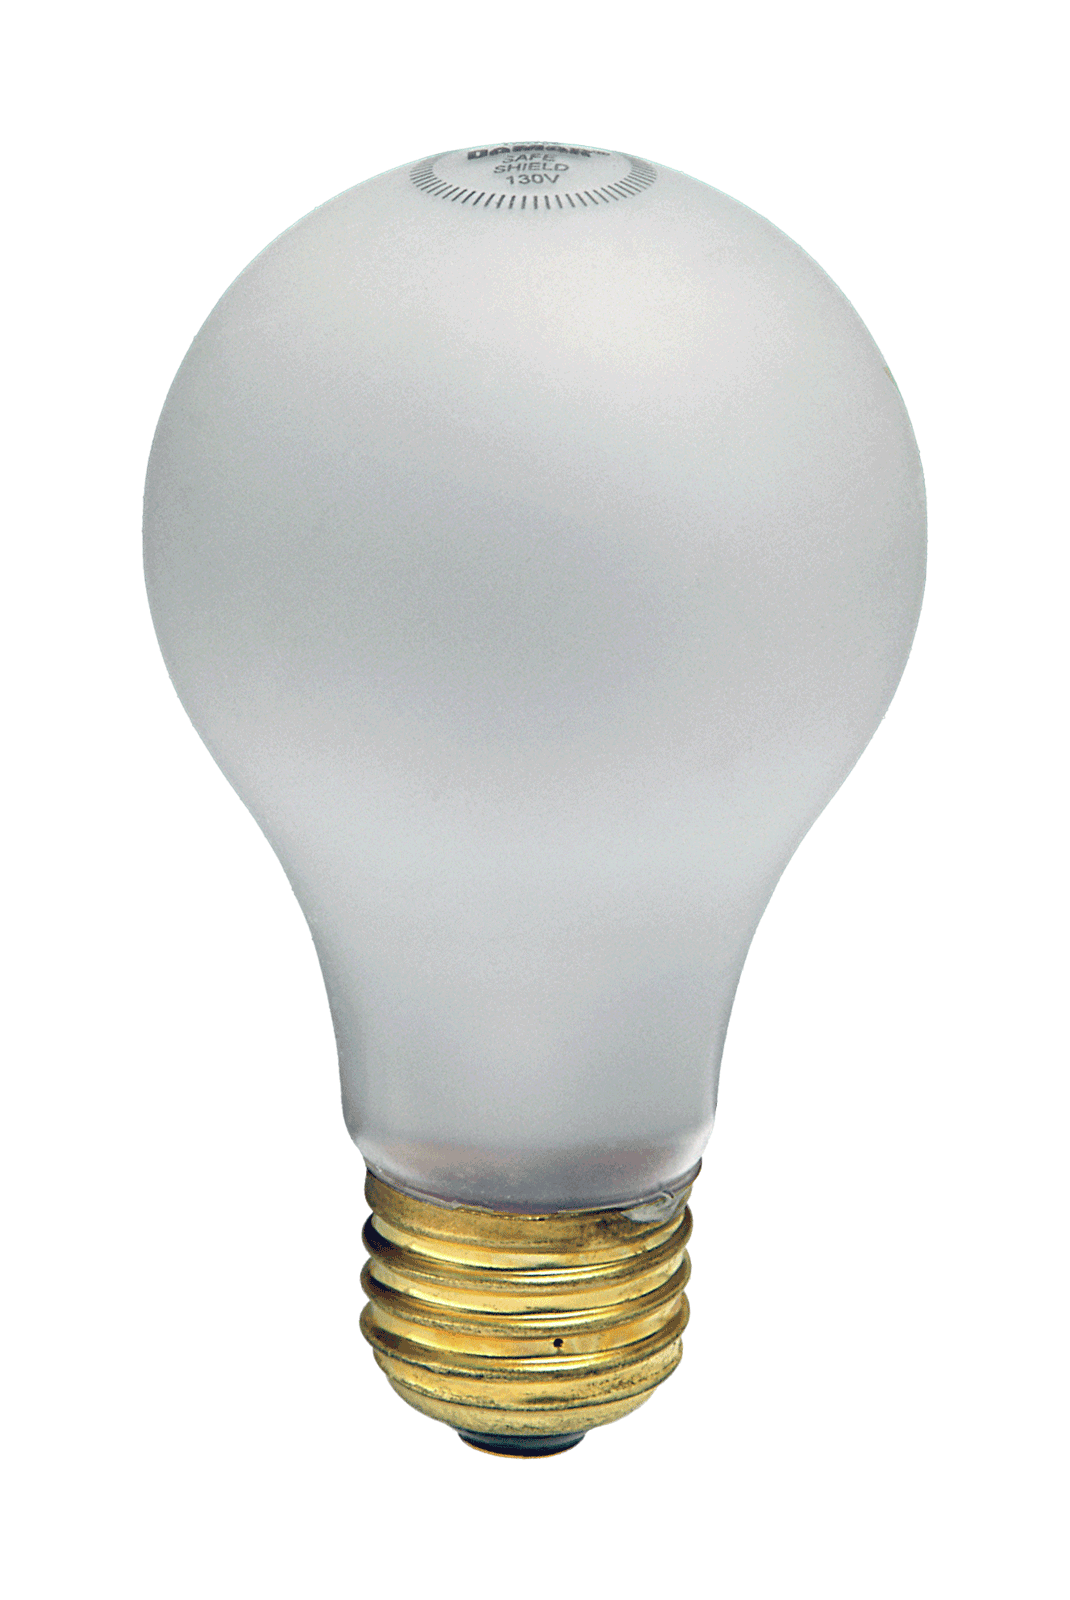 Light Material Halogen Incandescent A-Series Bulb PNG Image